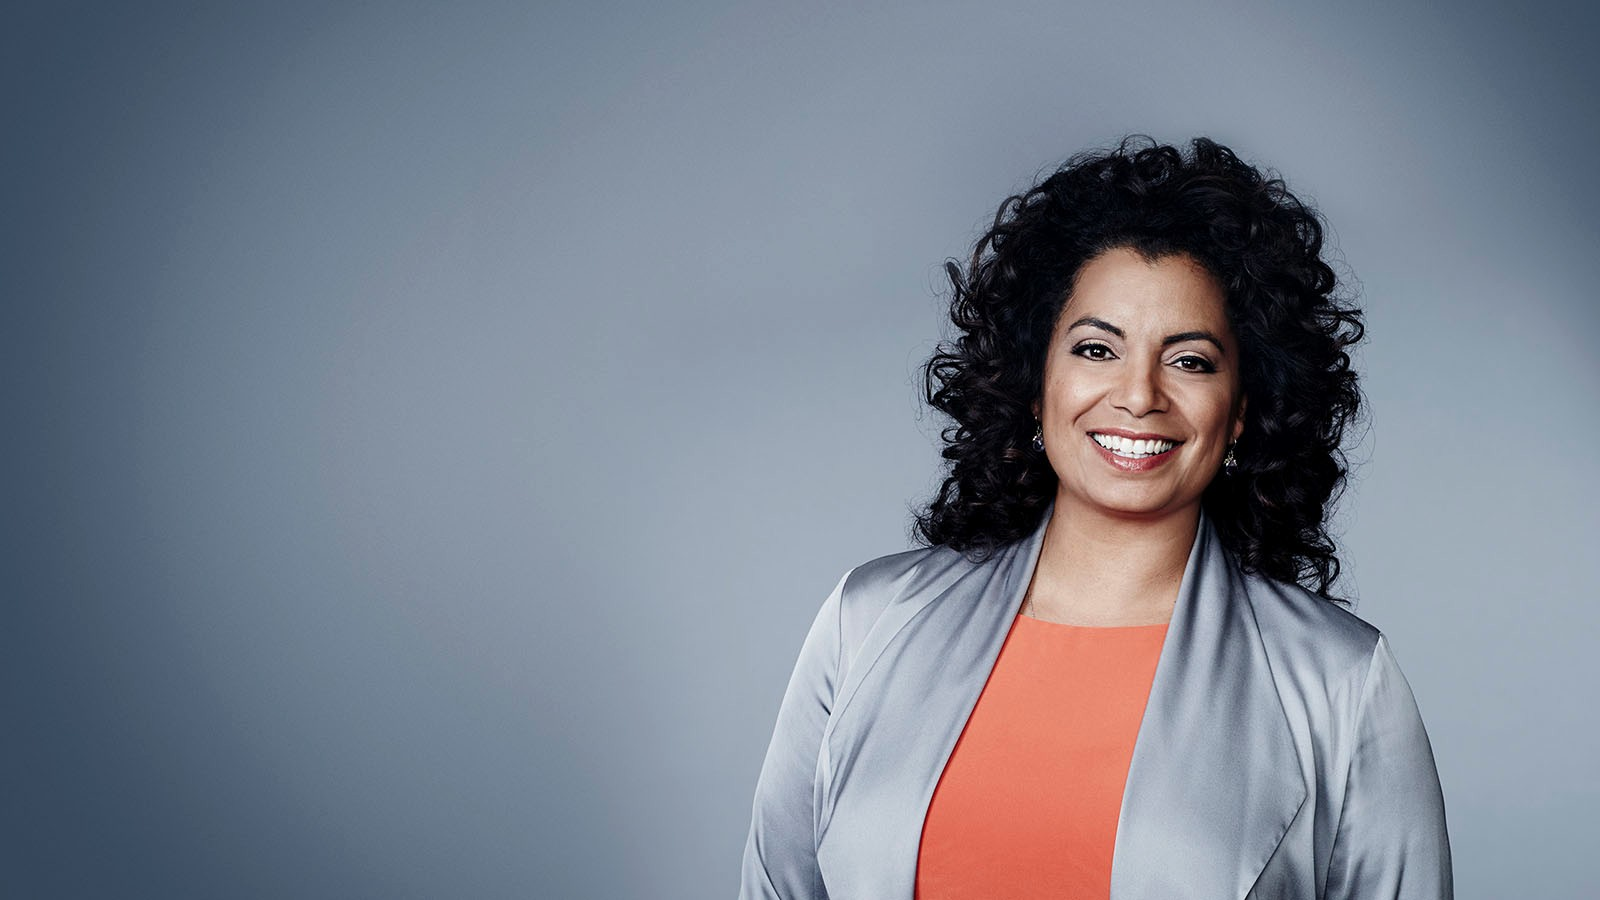 CNN Profiles - Michaela Pereira - Anchor - CNN.com - photo#29